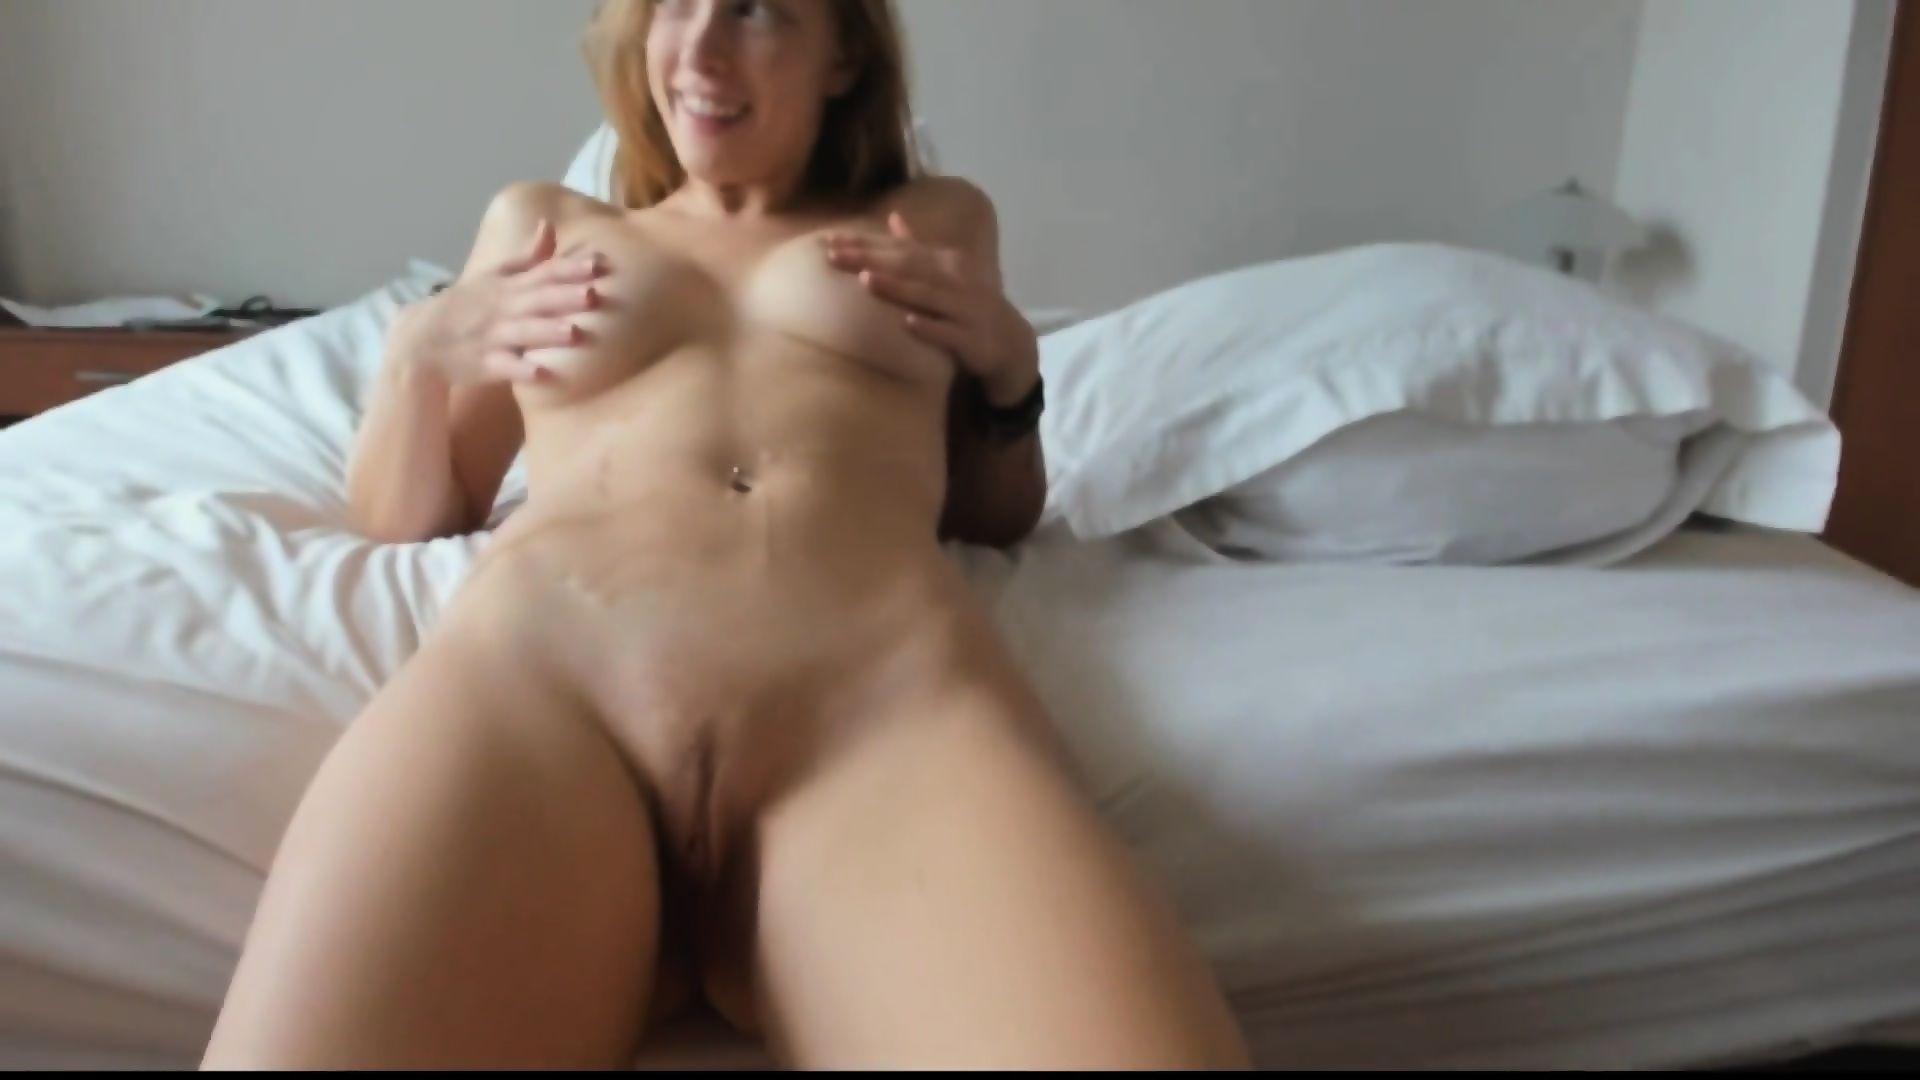 Awesome blowjob with hugecumshot